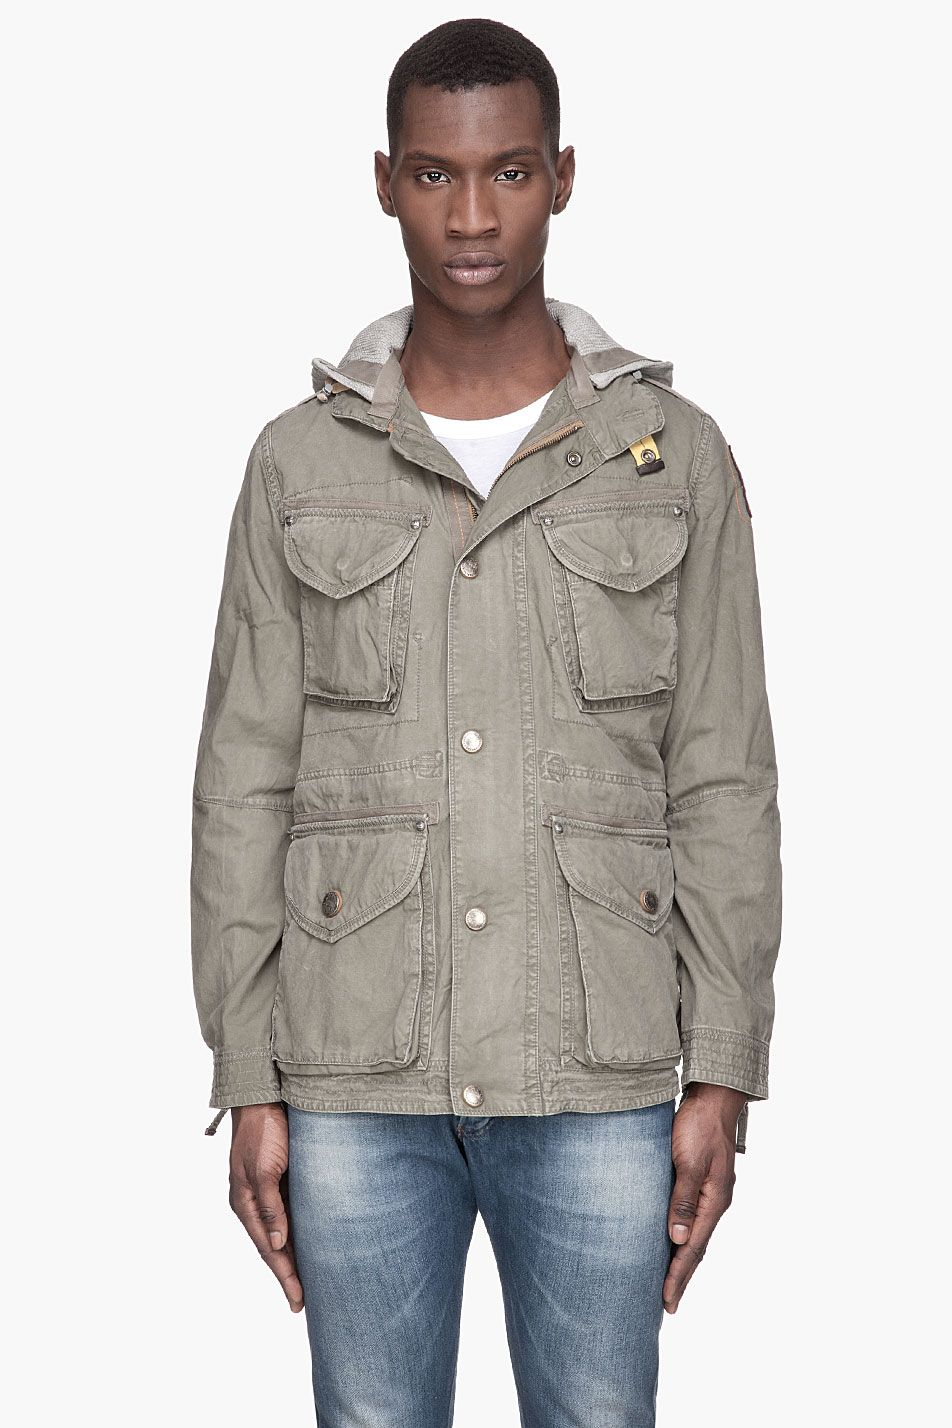 Parajumpers Khaki Green Randolph Hooded Jacket -  Parajumpers Khaki Green Randolph Hooded Jacket Parajumpers Long sleeve cargo jacket in khaki green. Fading. tonal accent stitching. and orange accent stitching throughout. Stand collar with press_stud closure on yellow tab. Heather grey jersey hood lined in tonal waffle cotton. Secondary...